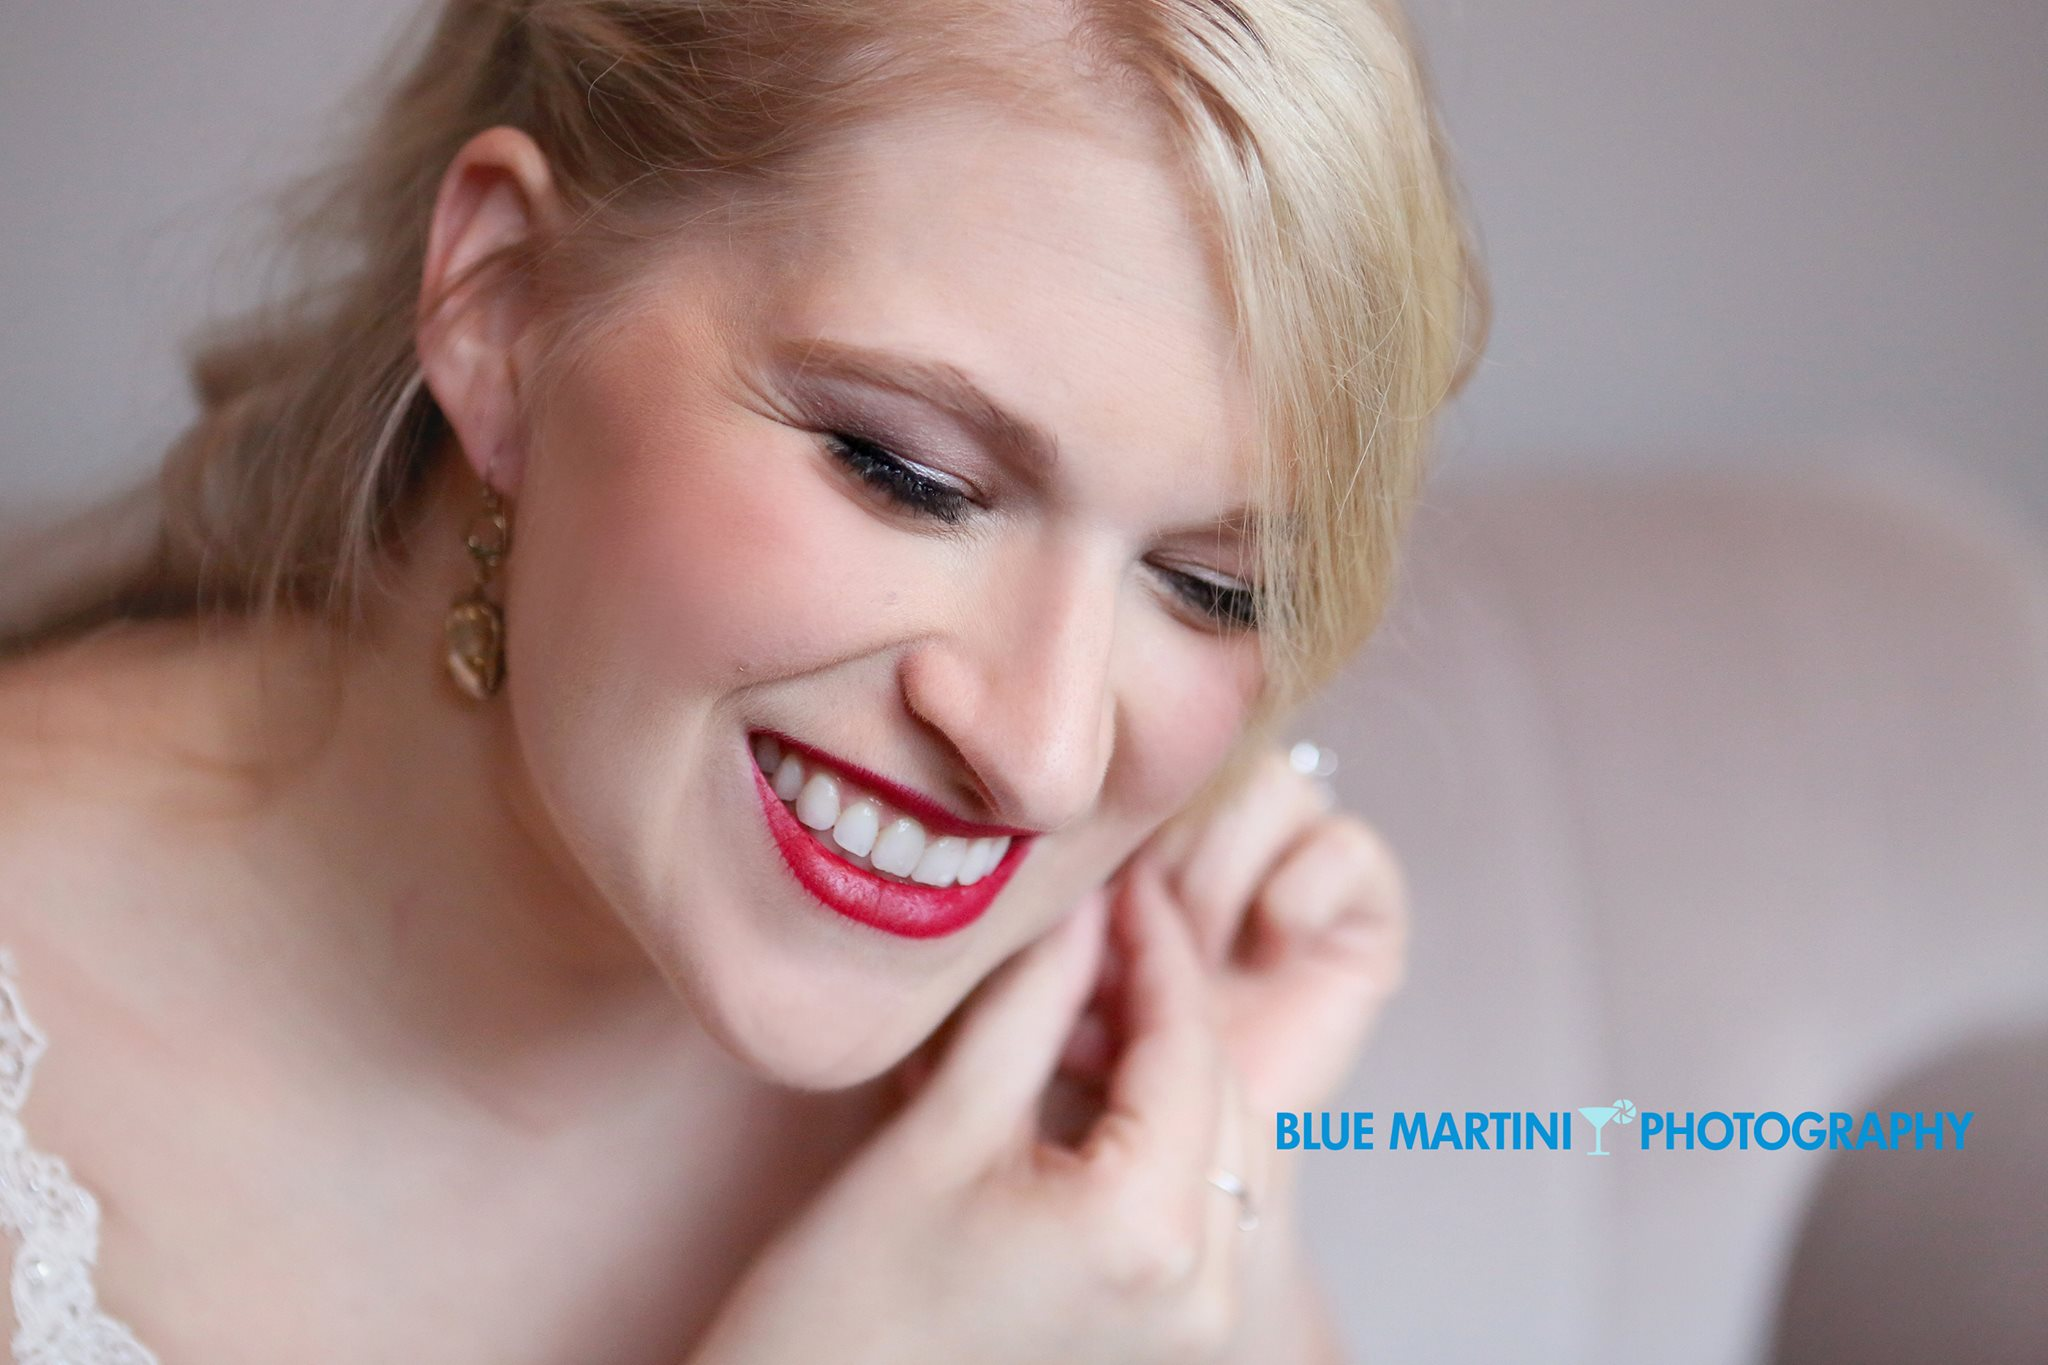 This has to be one of my favorite shots of Rikki. The amount of joy just radiated from her beautifully. Christin from Blue Martini really nailed this shot!